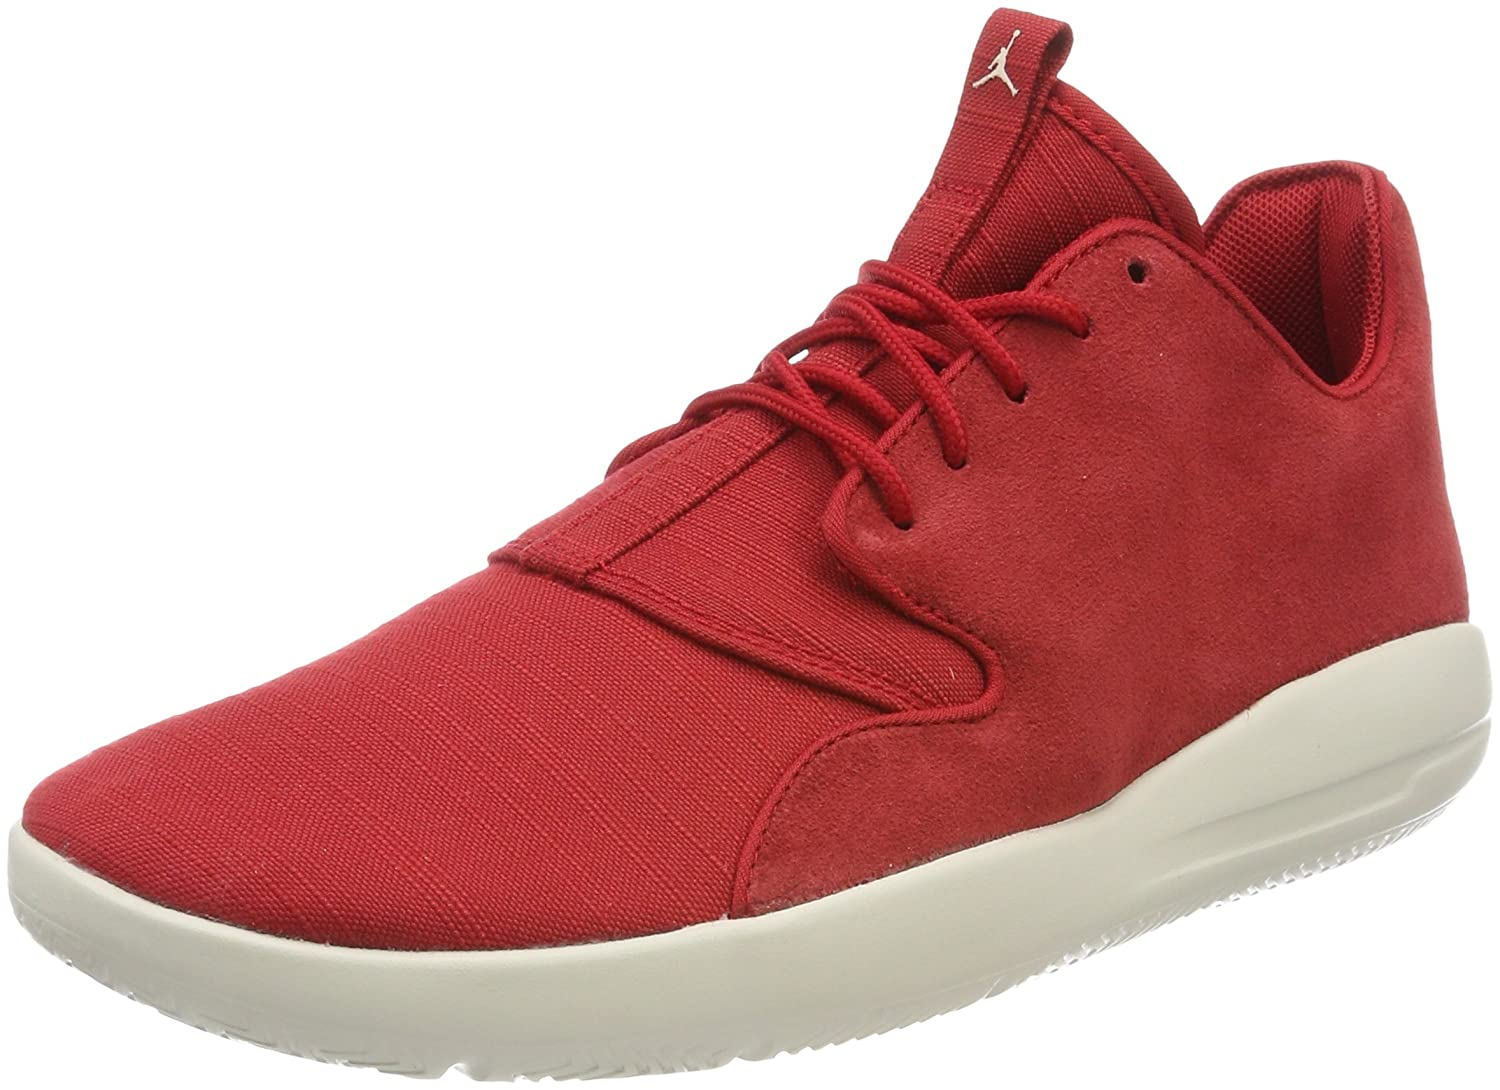 cheap for discount d6d4c 47133 Amazon.com   Jordan Nike Men s Eclipse Chukka Basketball Shoe   Basketball